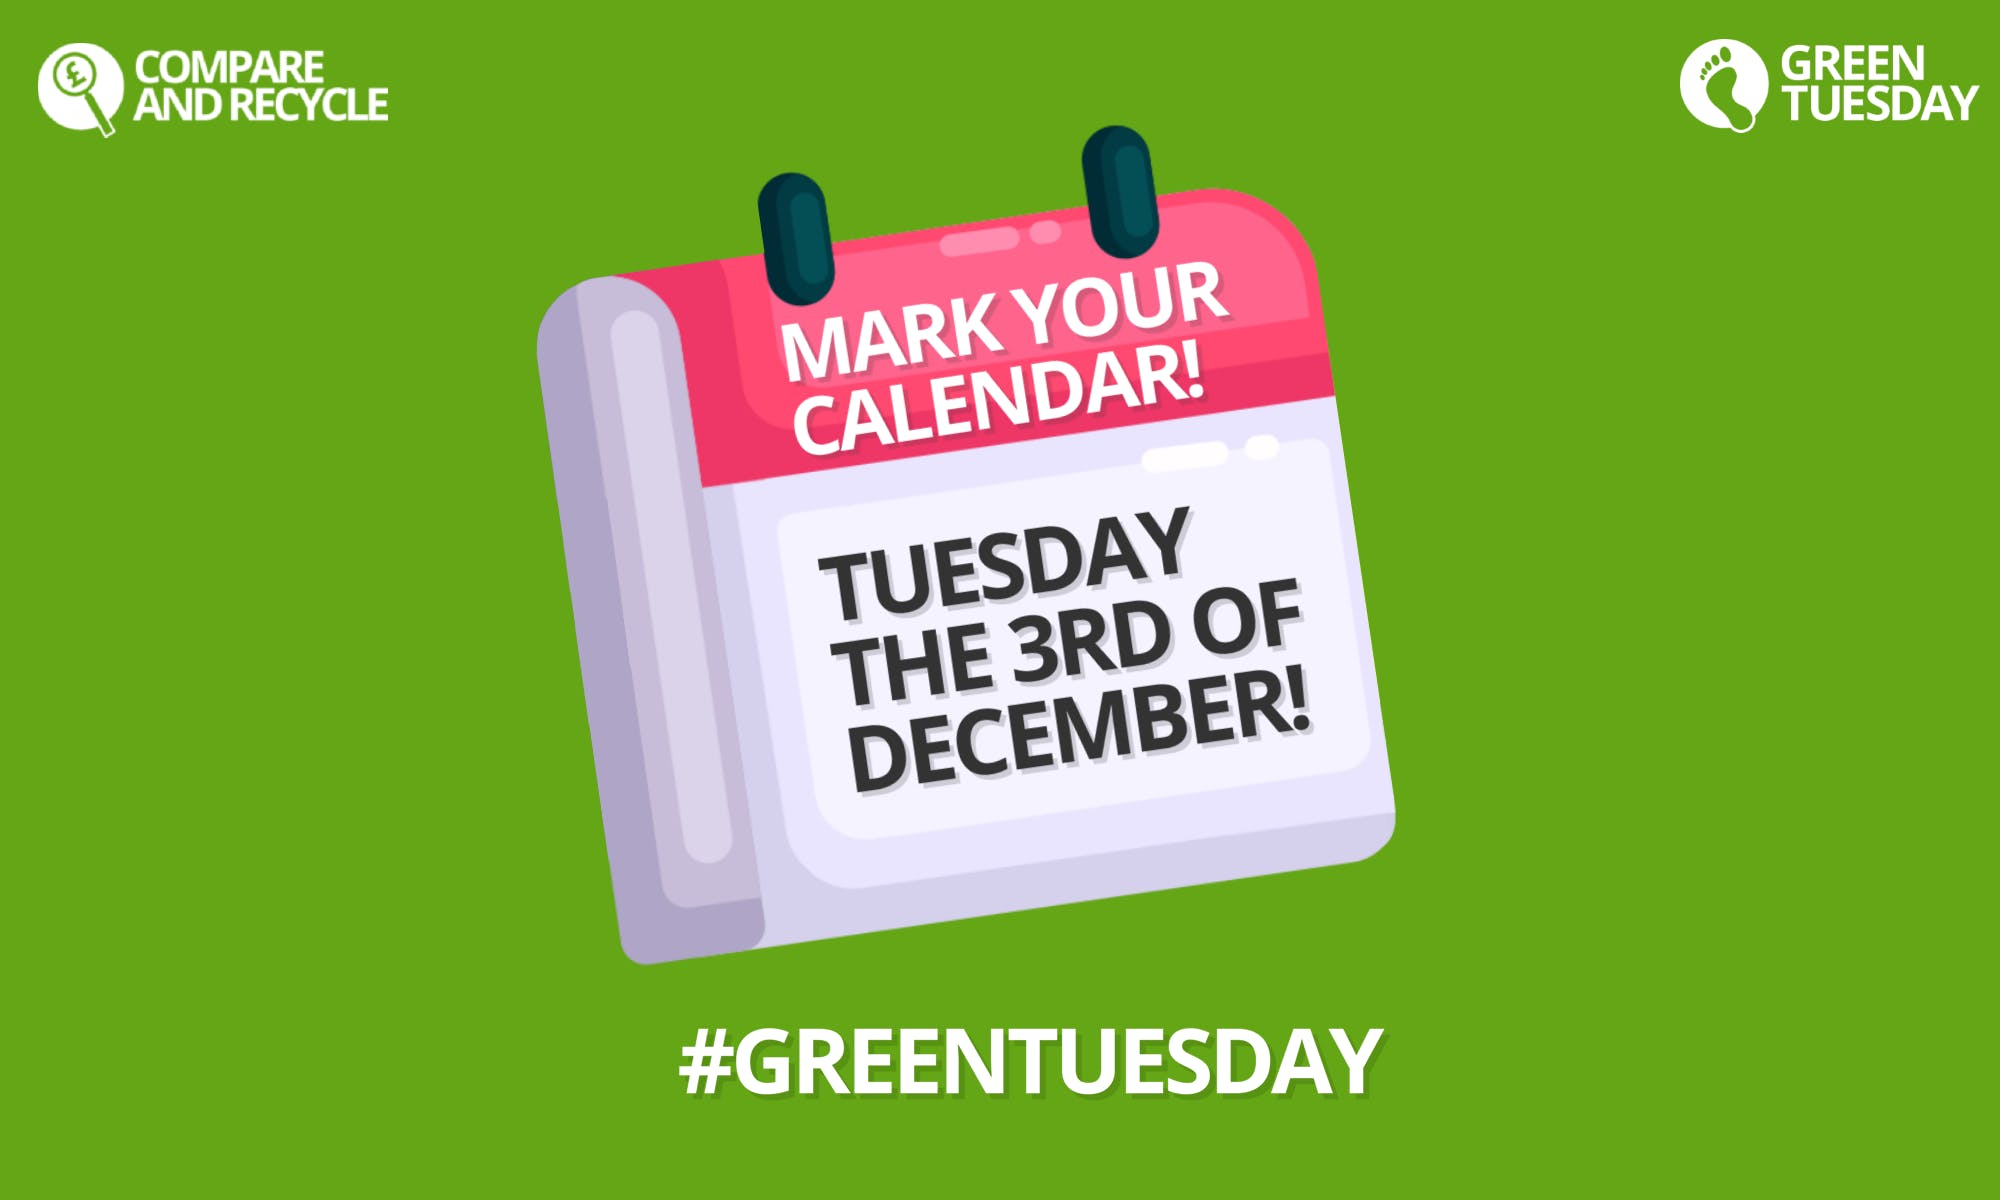 Green Tuesday Returns! Here's Why You Should Be Part Of It